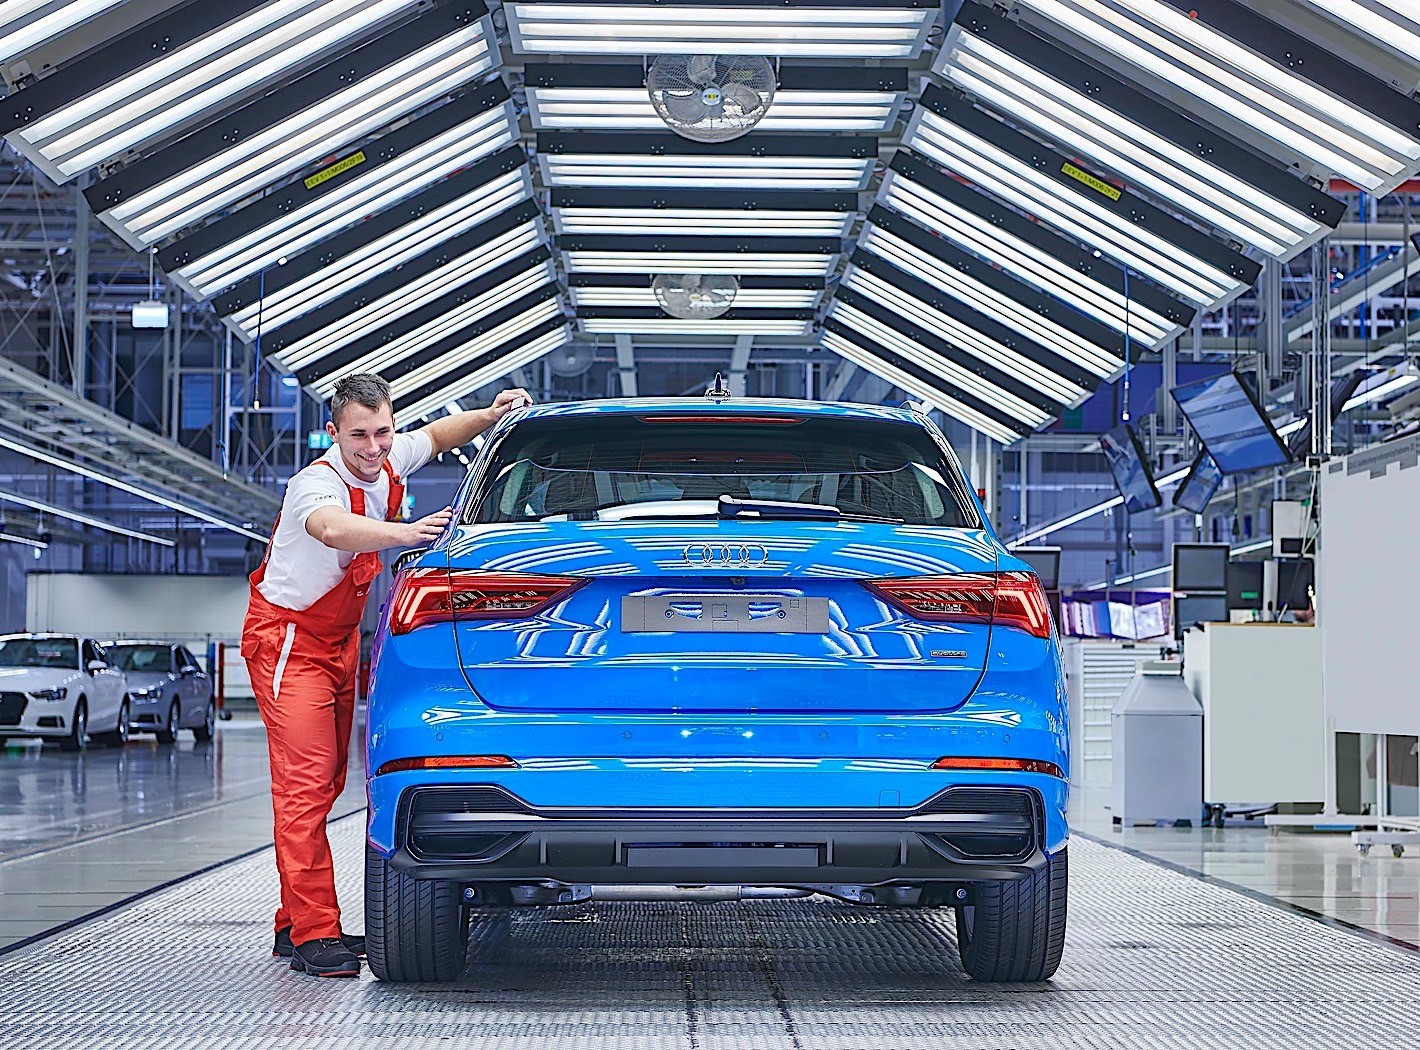 Audi Q3 production plant factory (2)